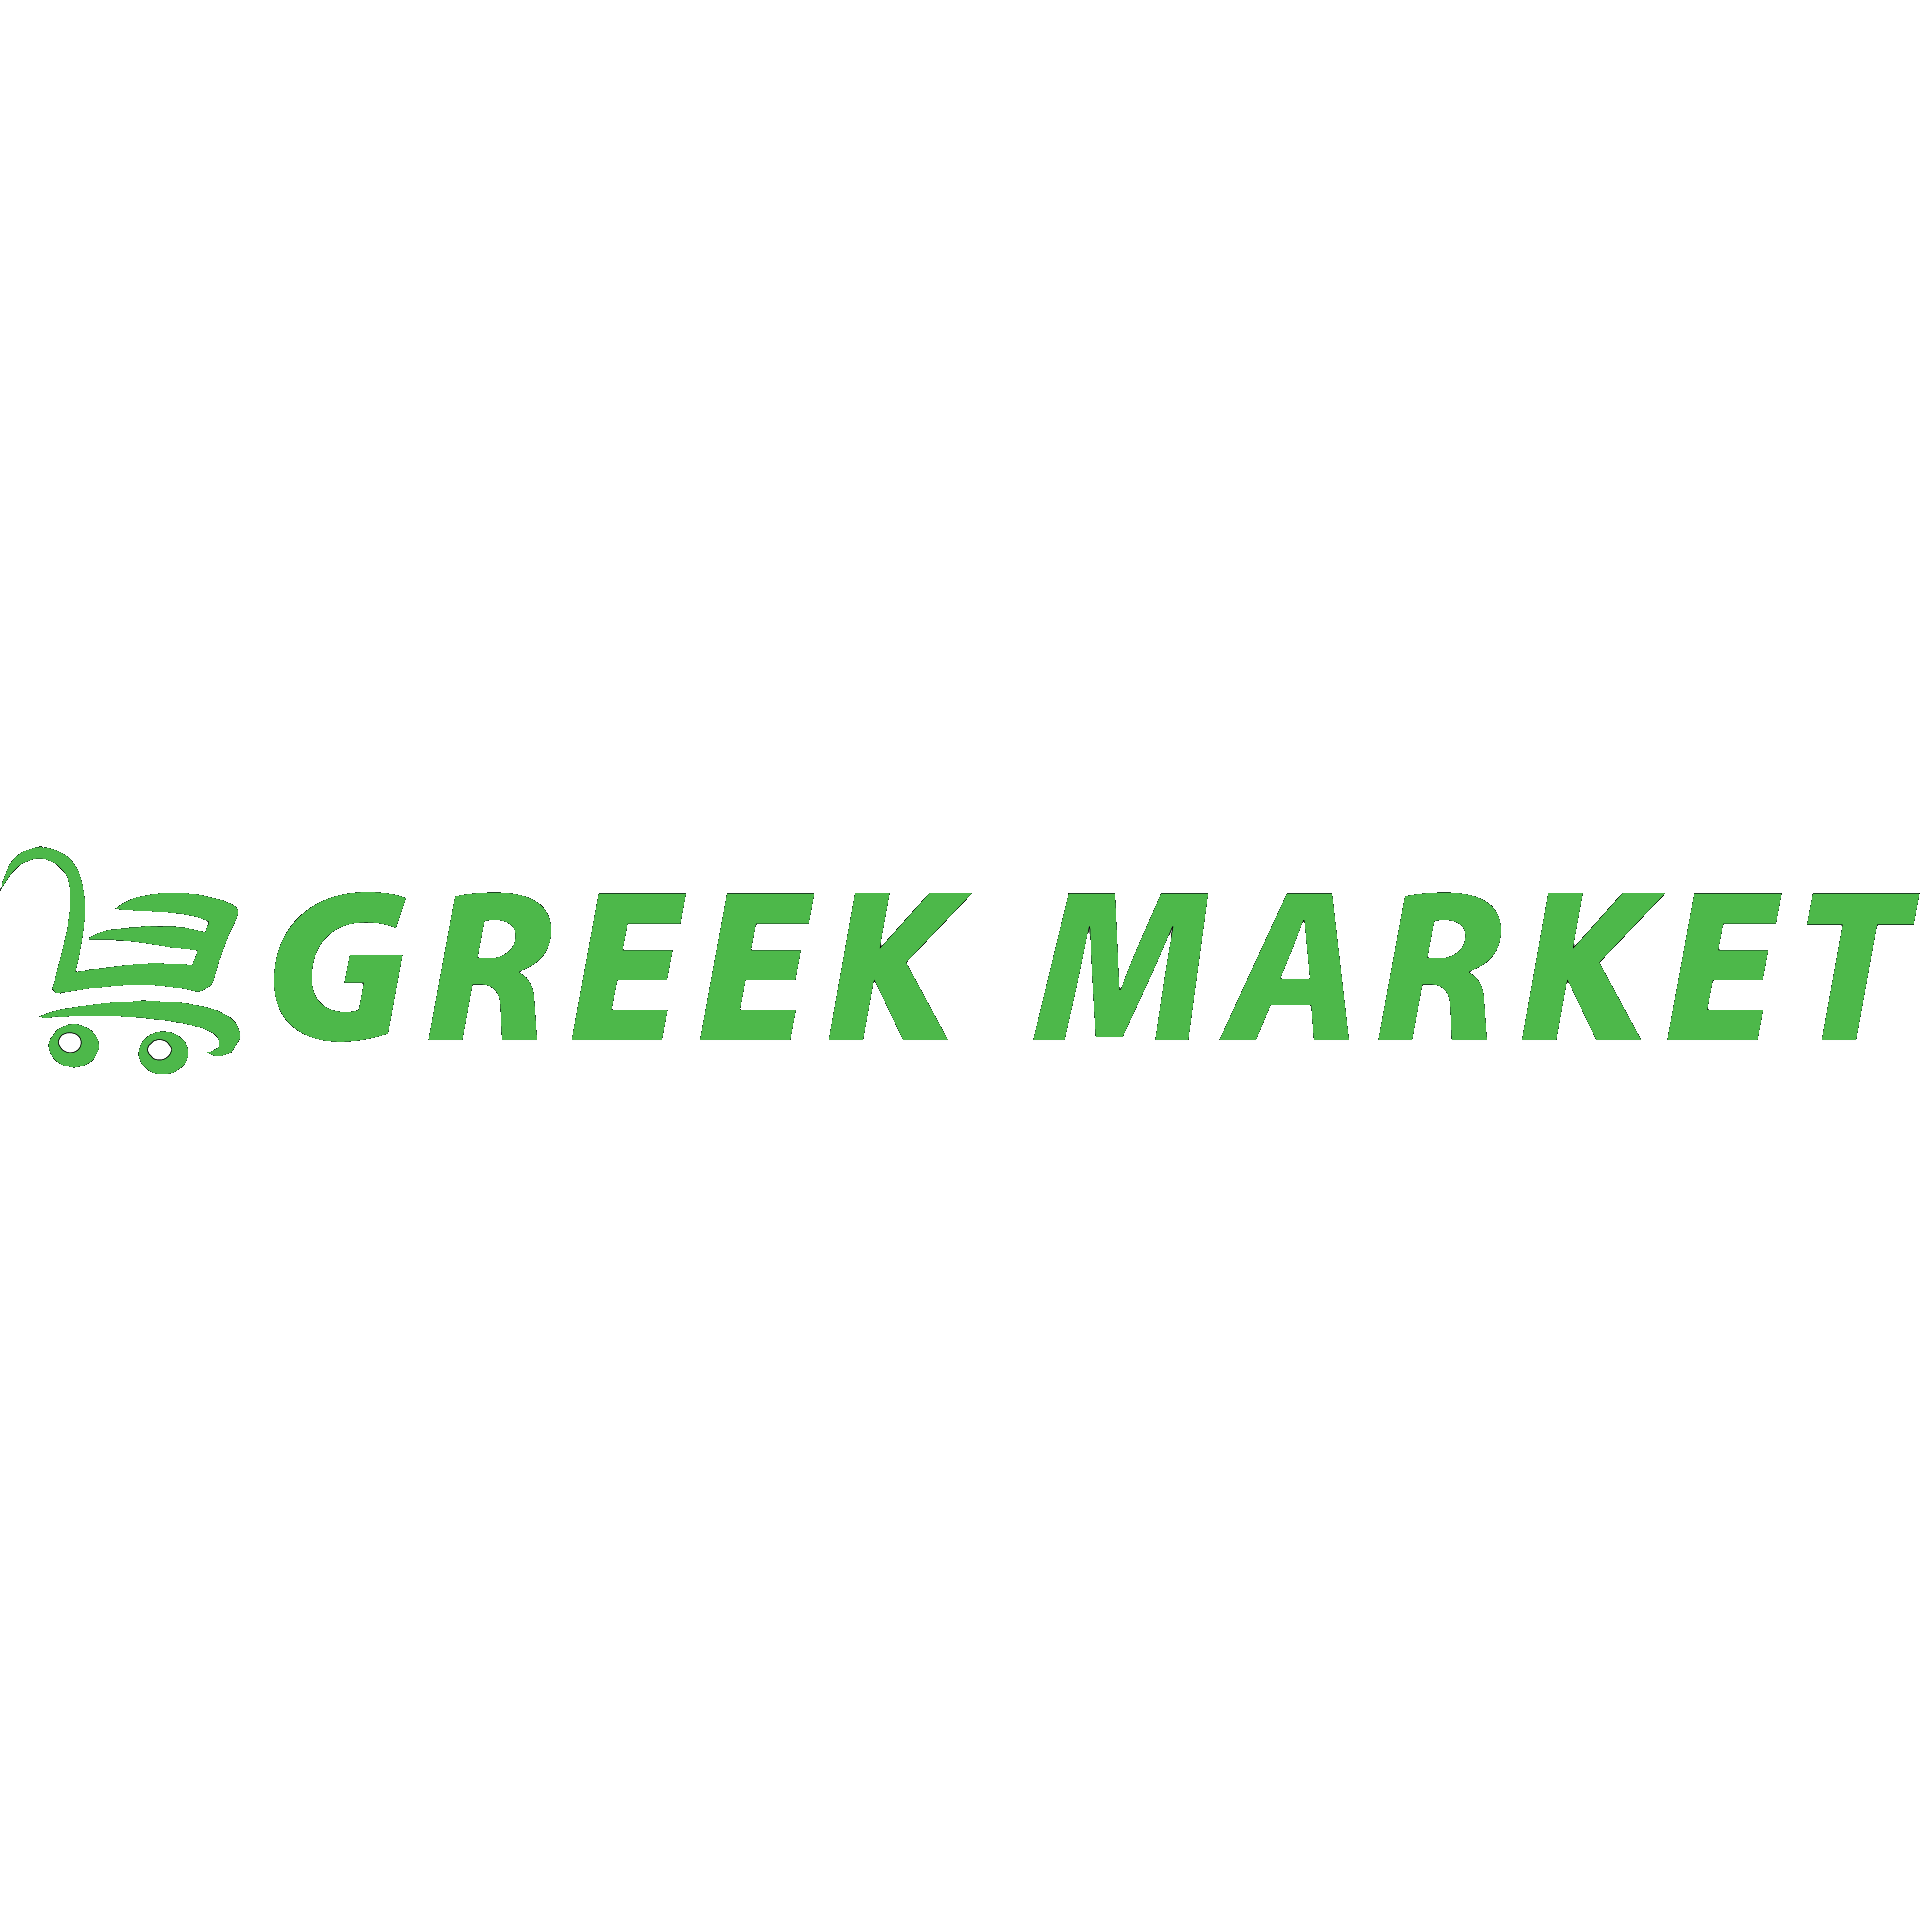 GREEK MARKET